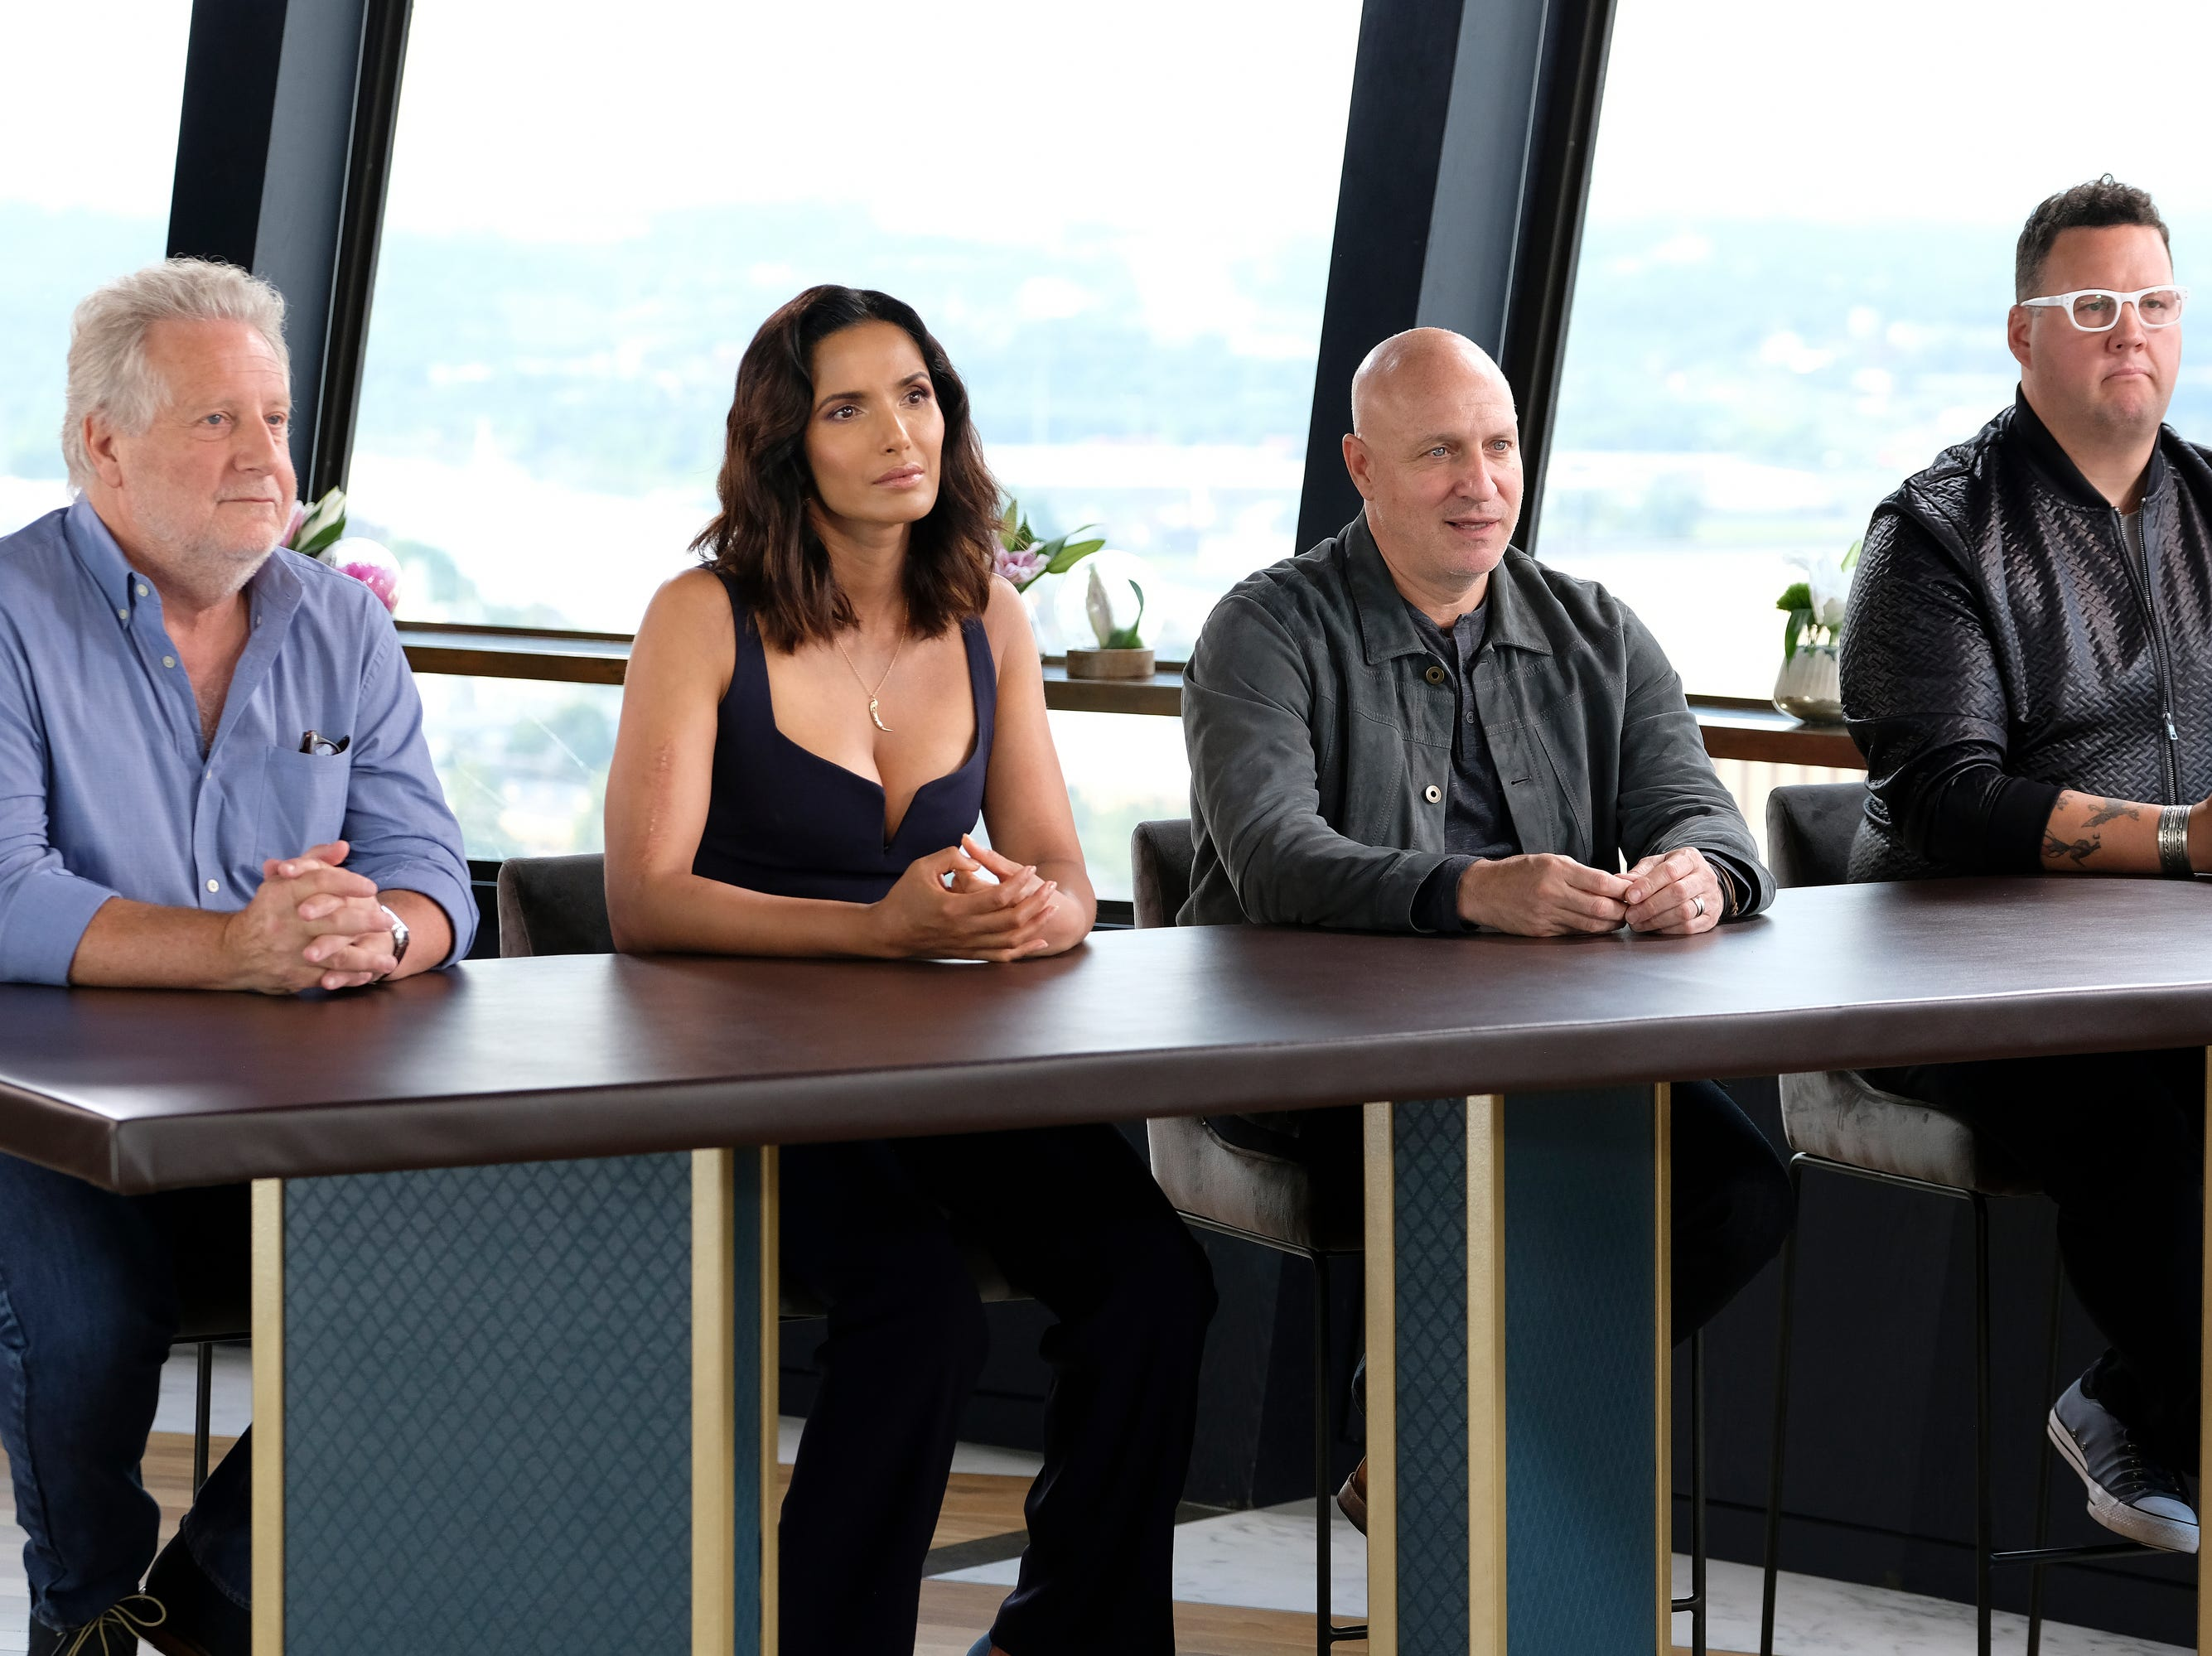 (Left to right): Chef Jonathan Waxman, Host Padma Lakshmi and judges Tom Colicchio and Graham Elliot on episode 9 of Bravo's 'Top Chef: Kentucky' season.